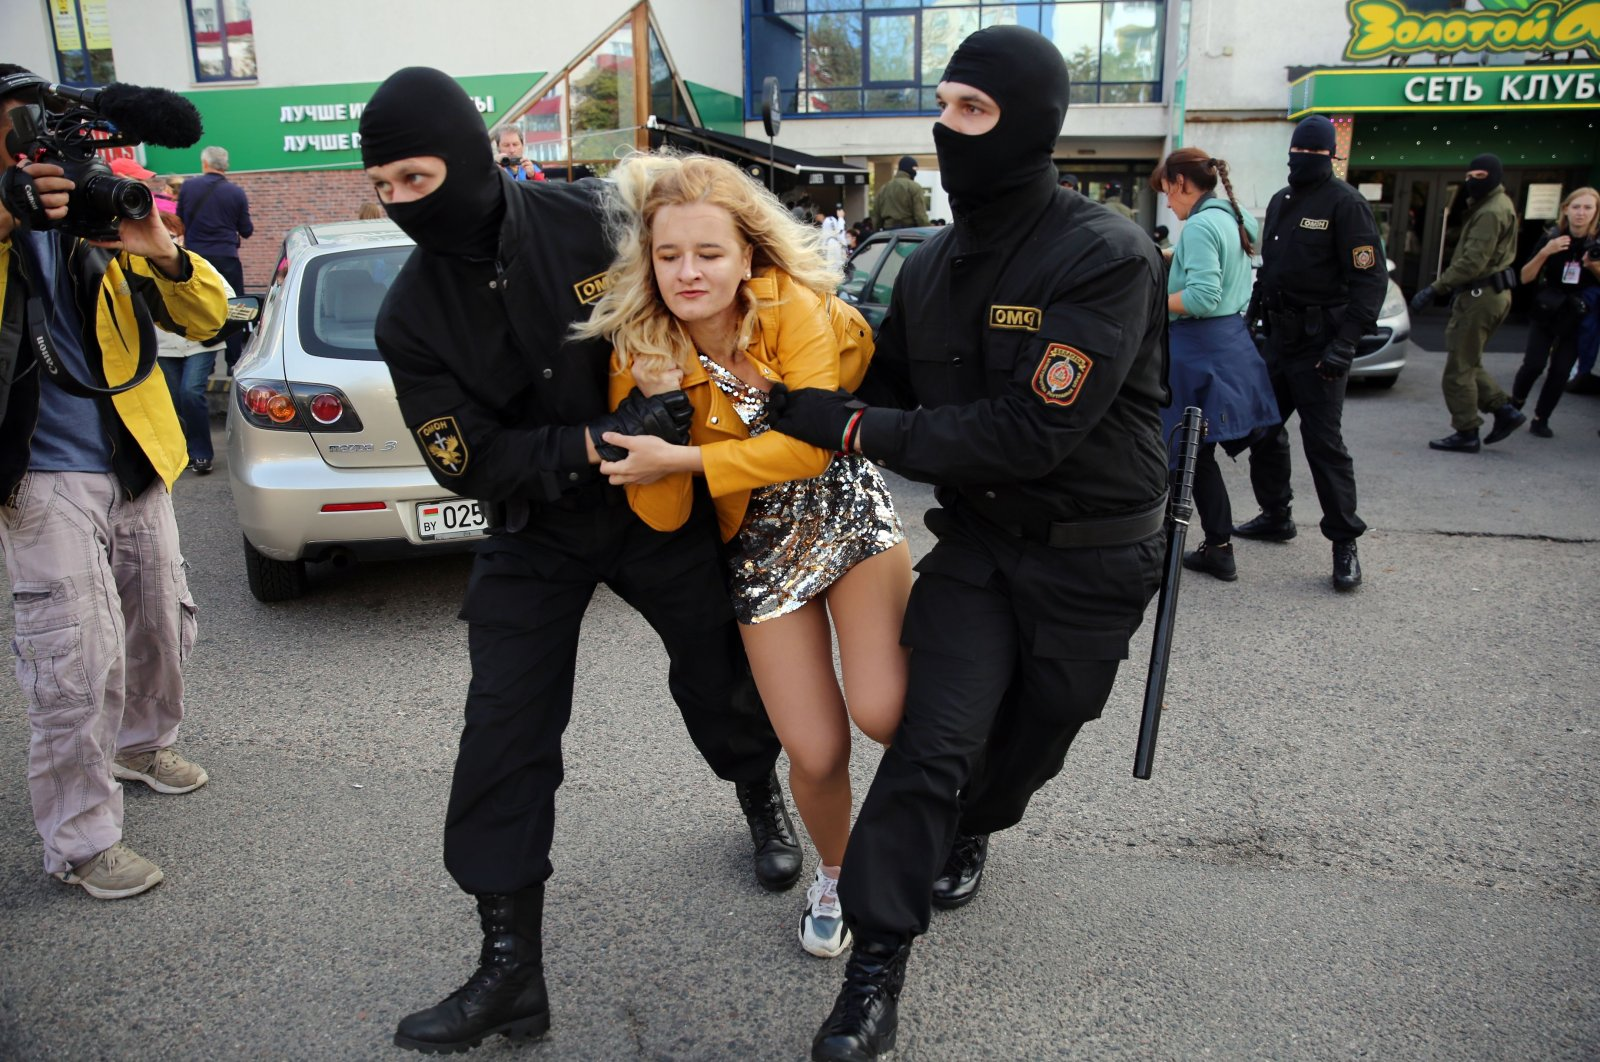 Riot police detain a woman during a rally to protest against the Belarus presidential election results in Minsk on September 19, 2020. (AFP Photo)